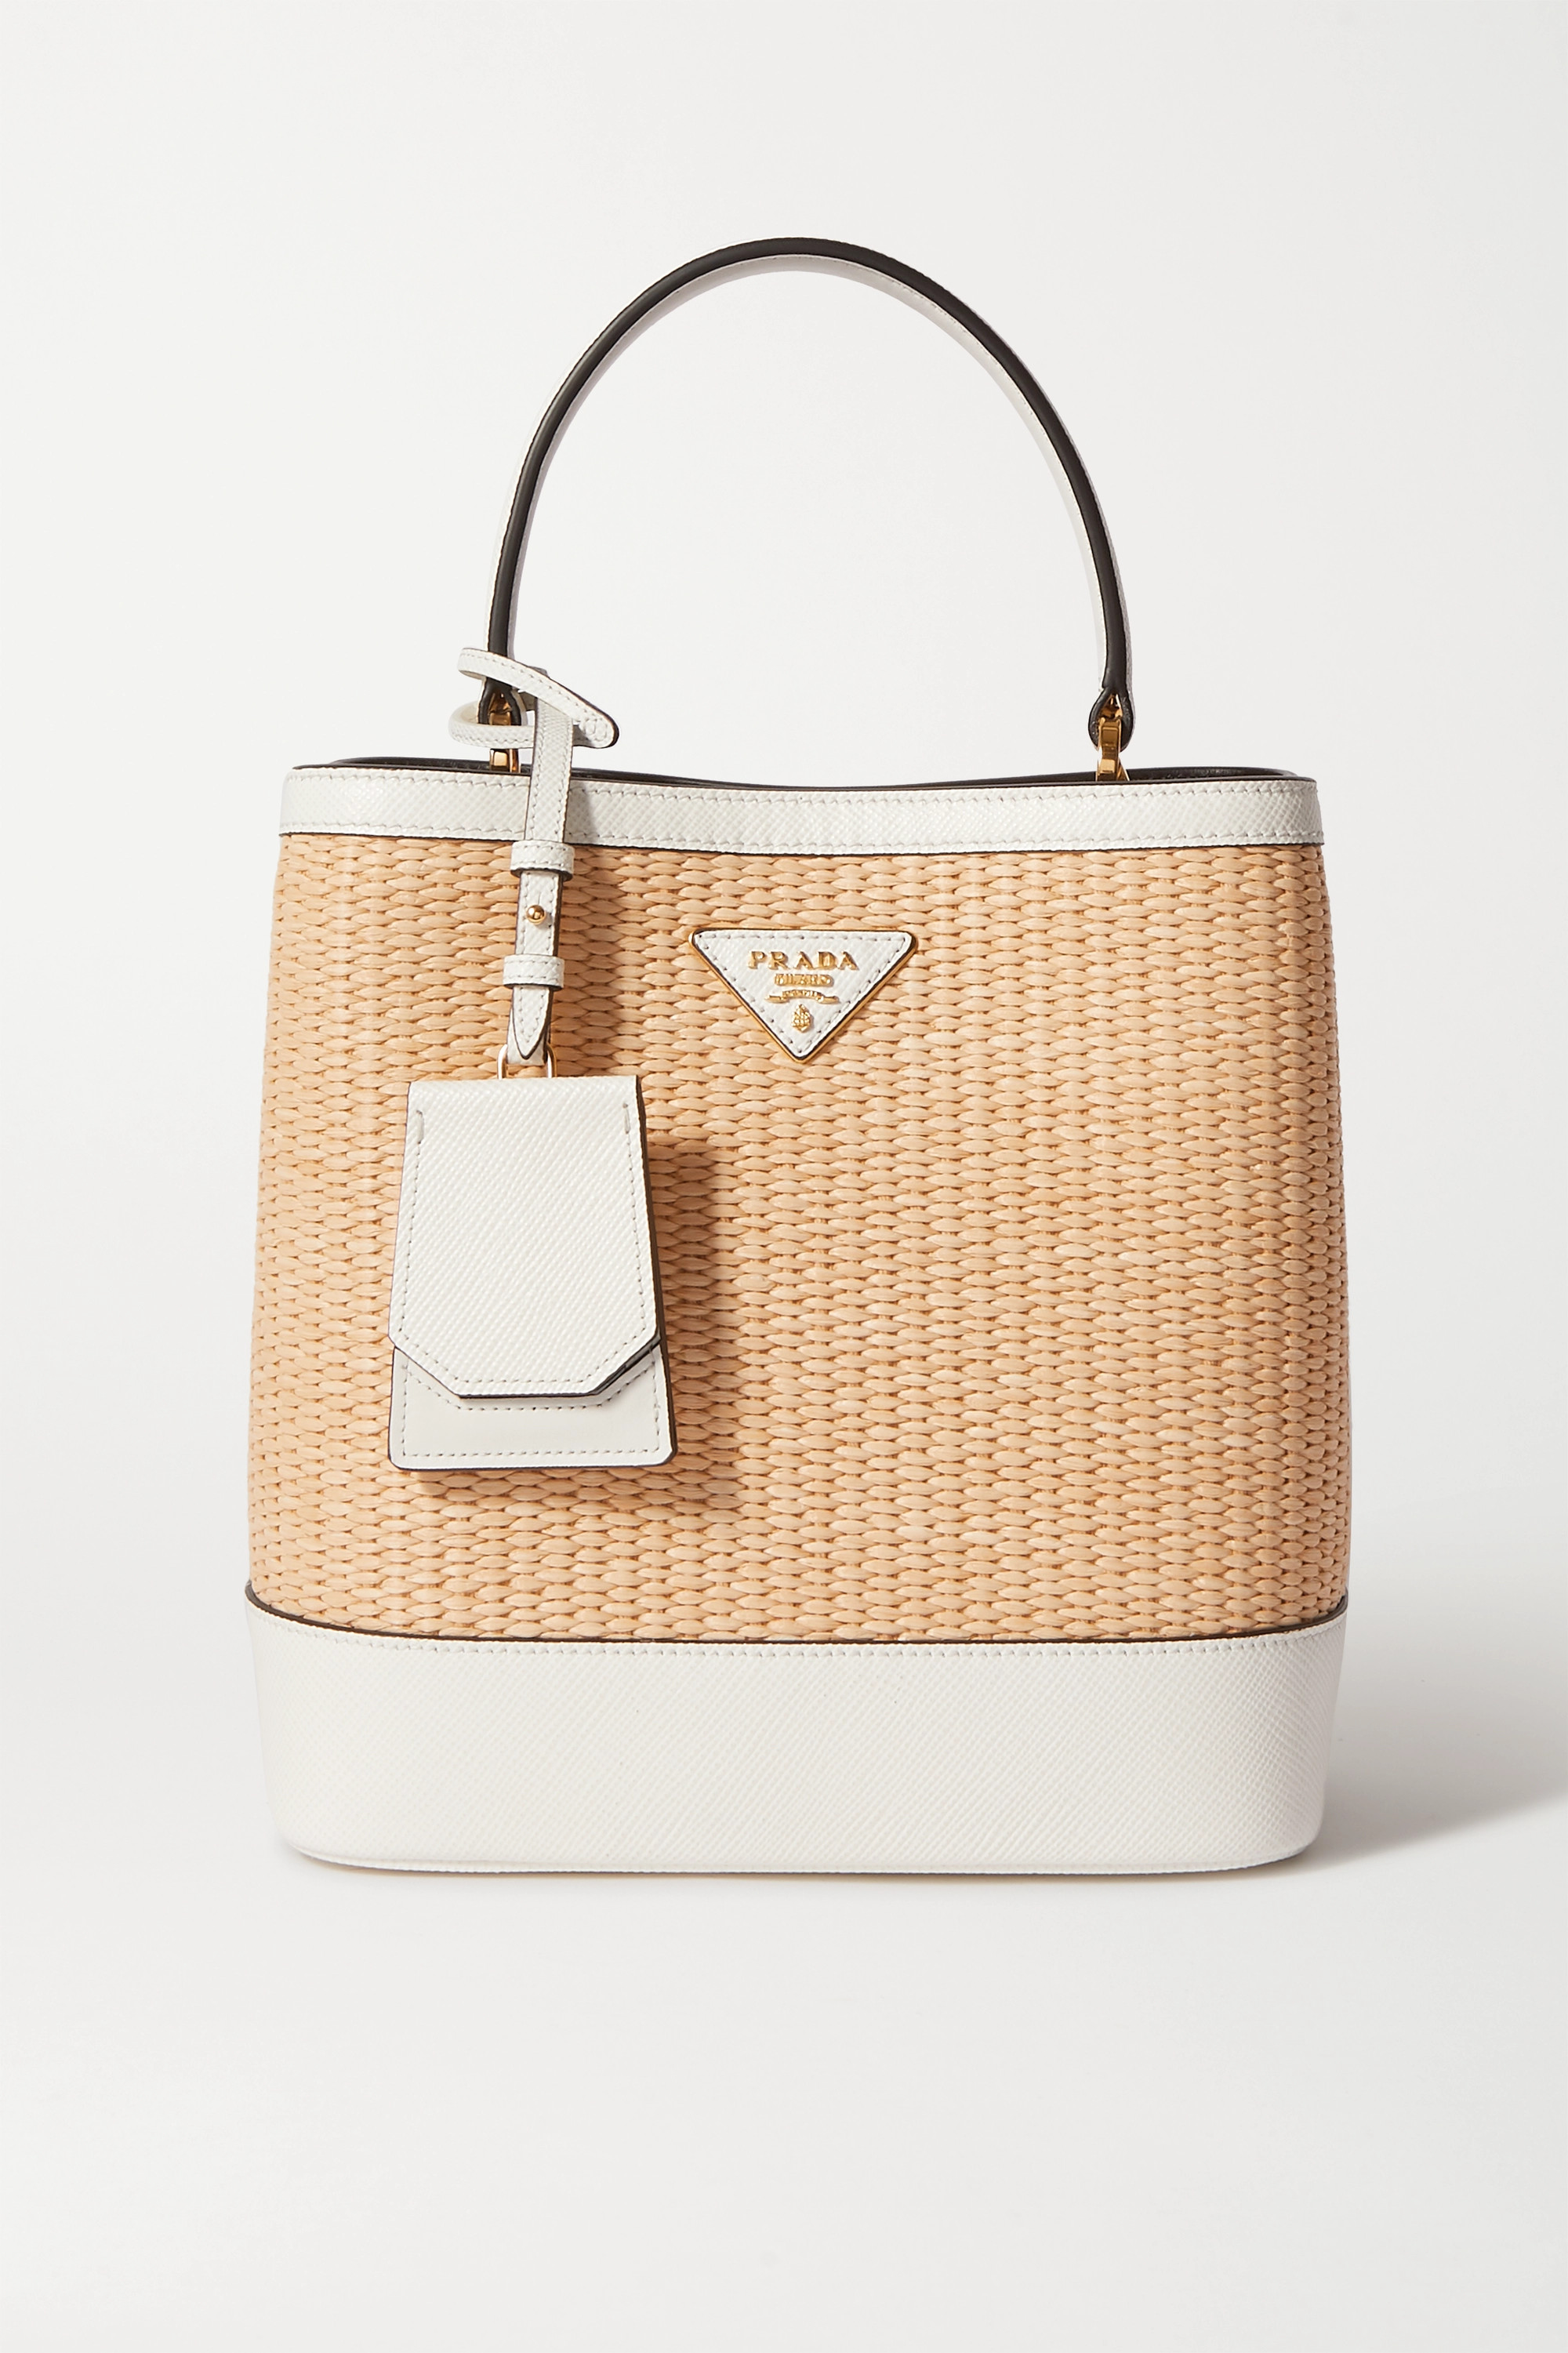 Prada Panier small textured leather-trimmed straw tote